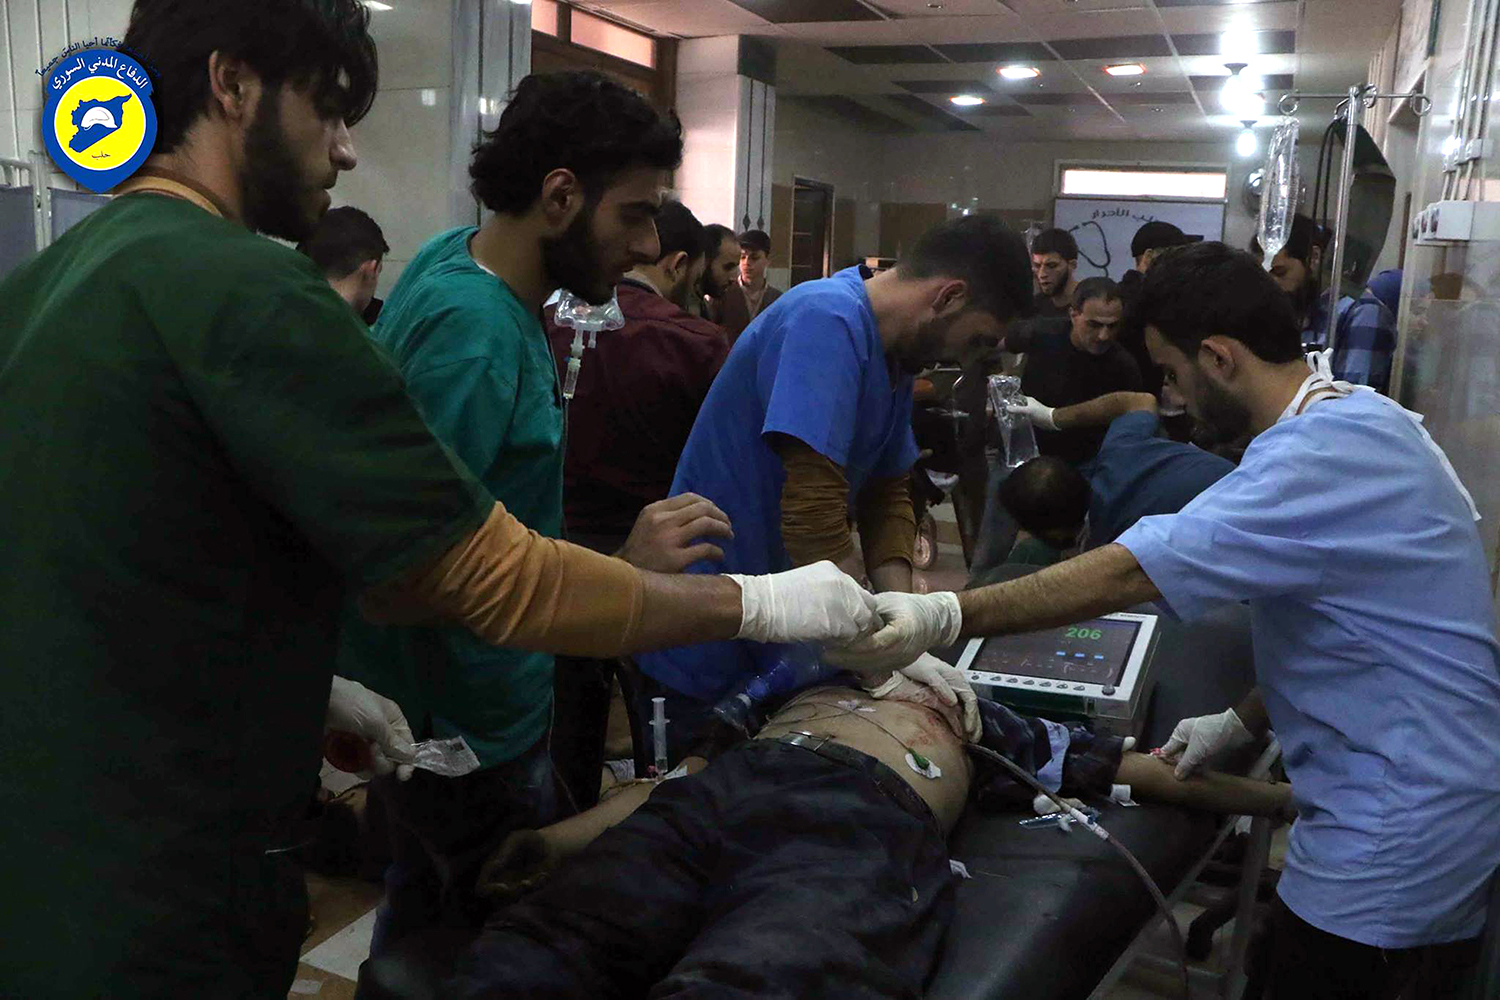 """In this photo provided by the Syrian Civil Defense group known as the White Helmets, shows wounded receiving treatment at a local clinic after airstrikes hit Aleppo, Syria, Sunday, Sept. 25, 2016. A broad coalition of Syrian rebels denounced international negotiations for peace as """"meaningless"""" on Sunday, as the U.N. Security Council prepared to convene an emergency meeting about the spiraling violence in Syria. (Syrian Civil Defense White Helmets via AP)"""